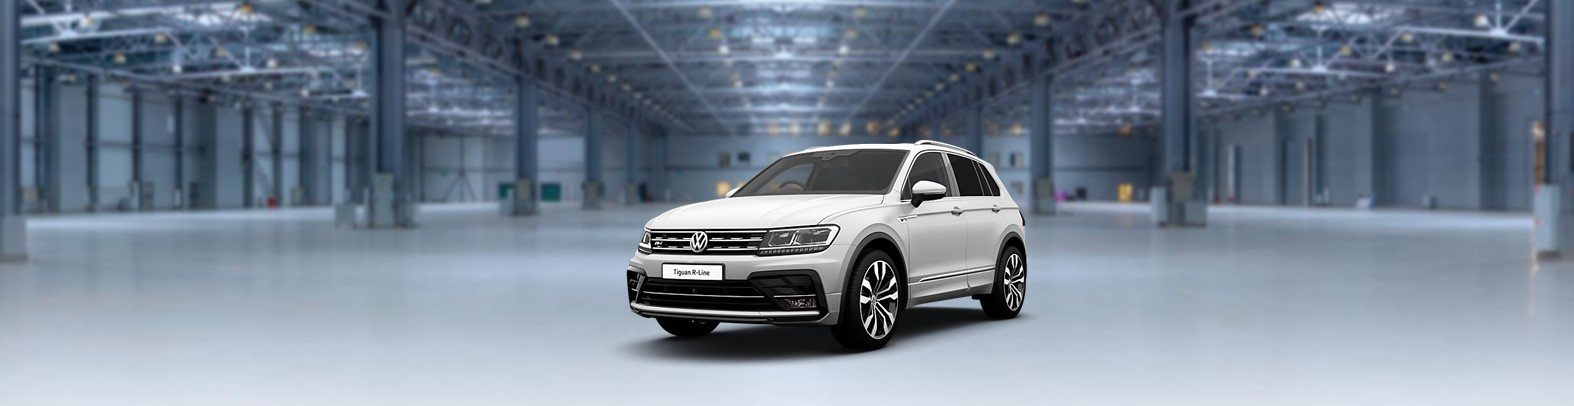 vw-slide-tiguan